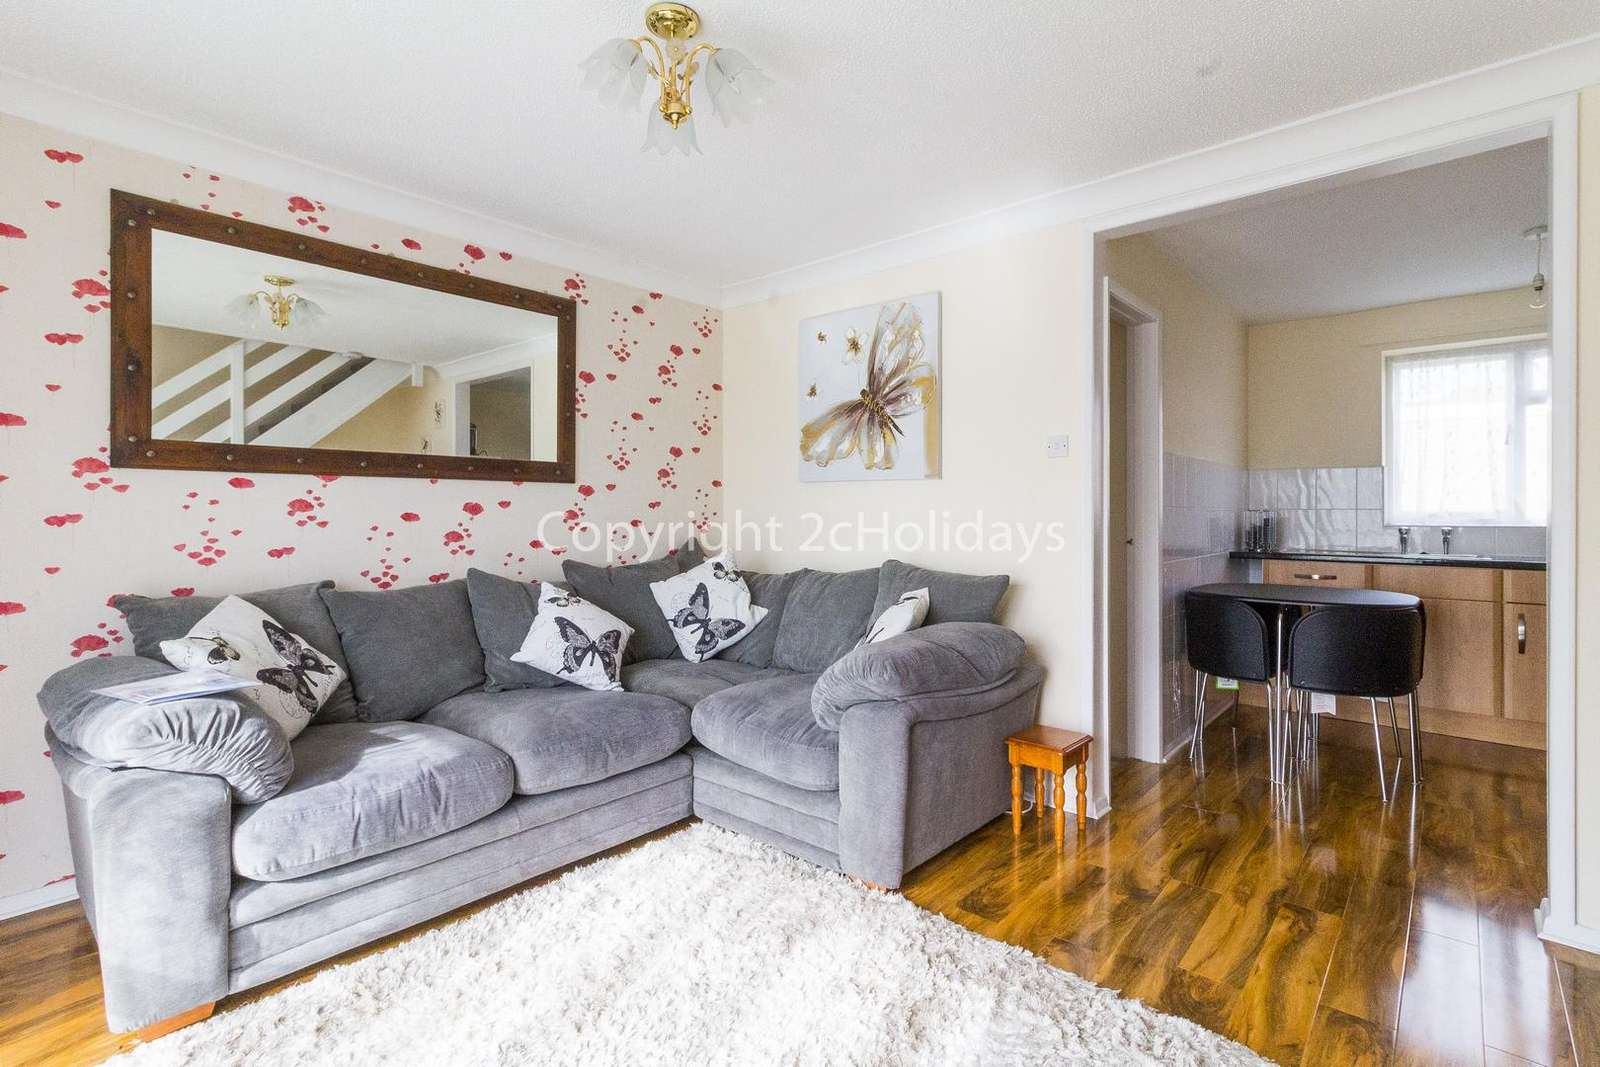 A cosy lounge with a TV included - property